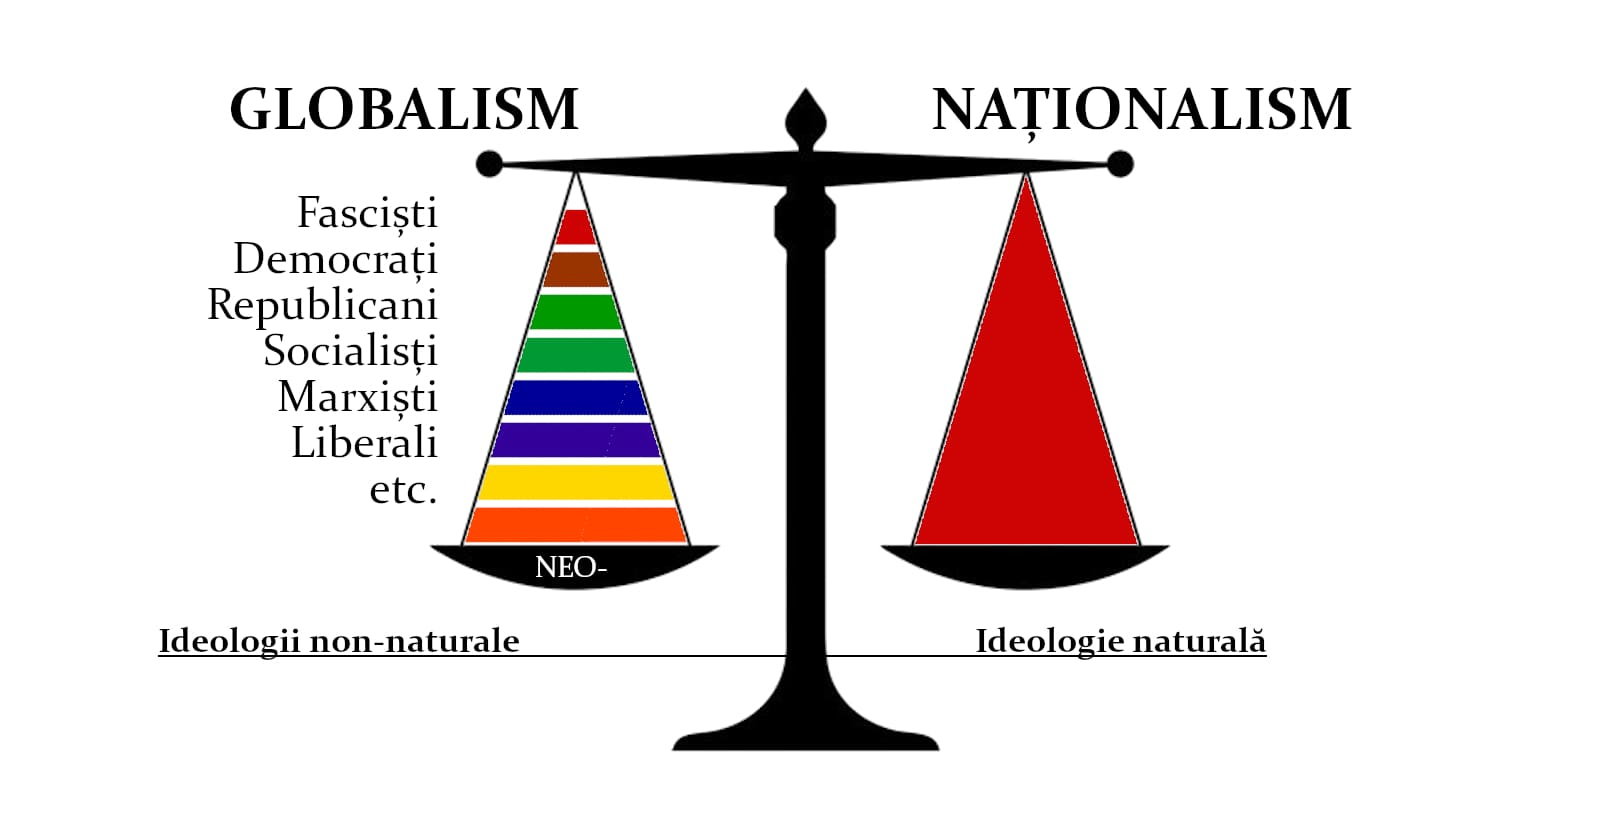 https://ziarul.romania-rationala.ro/control/articole/articole/nationalism-globalism.jpg